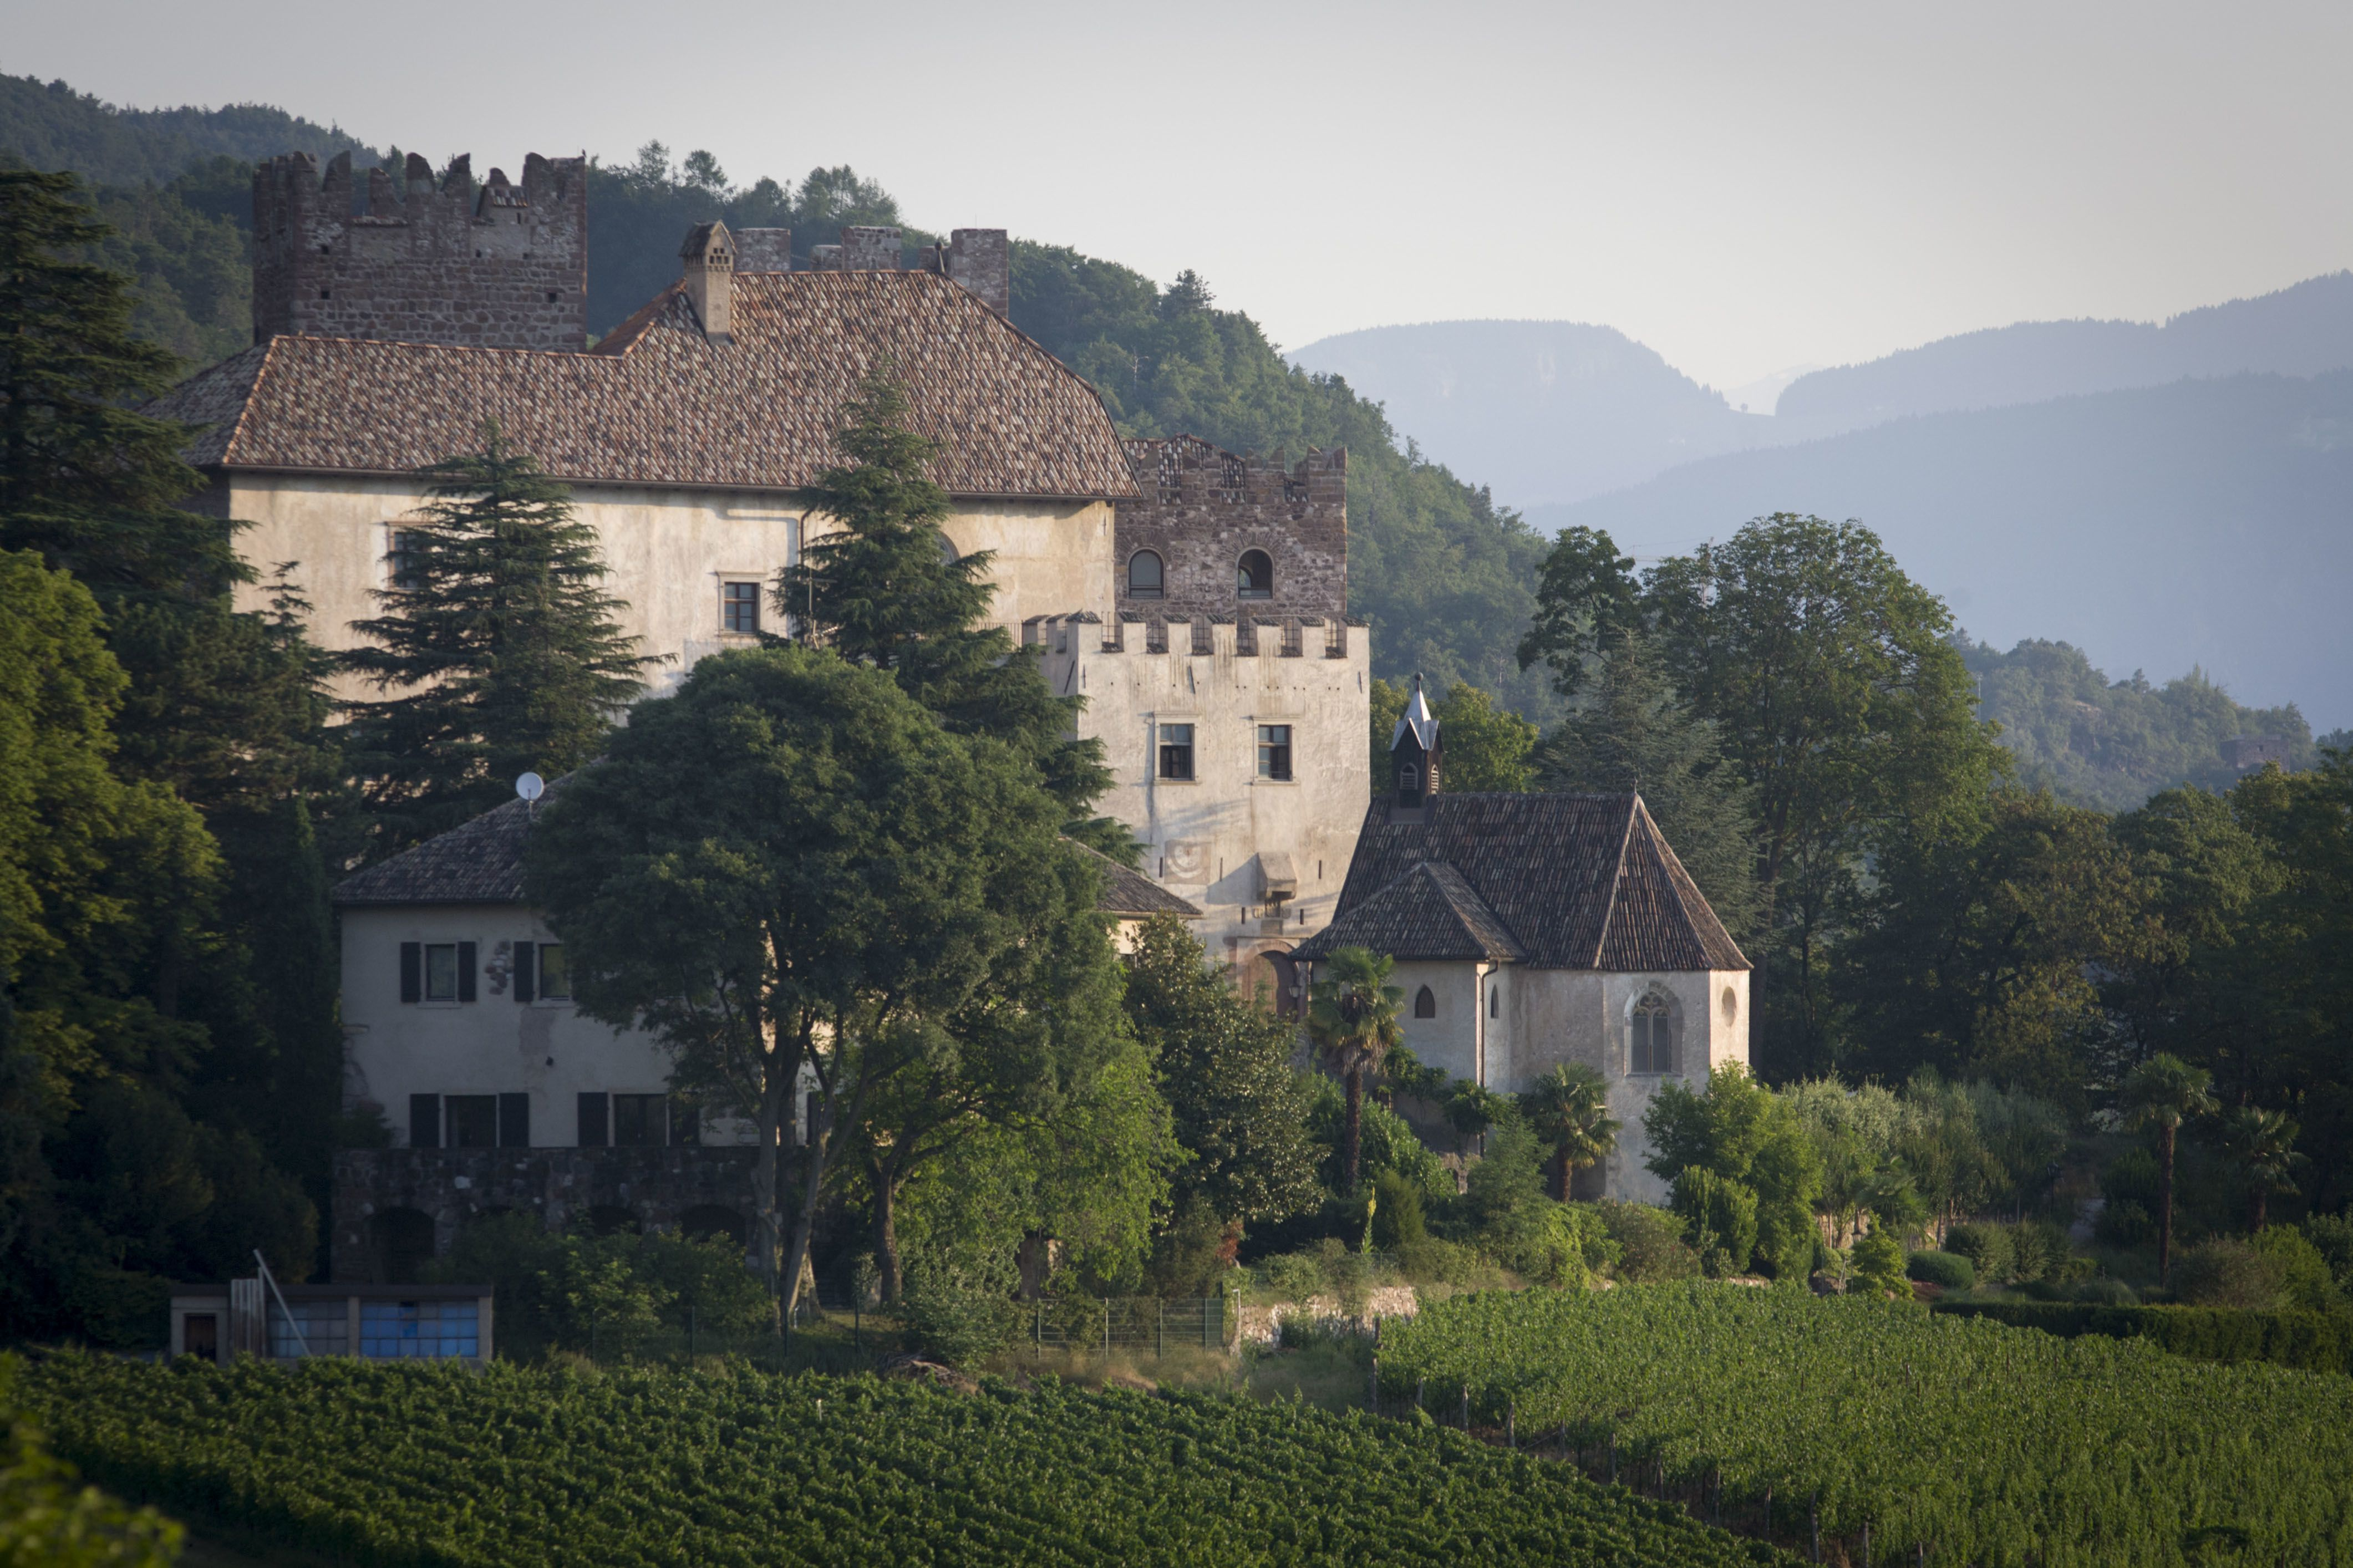 fortified house with crenellation in the hills of Italy